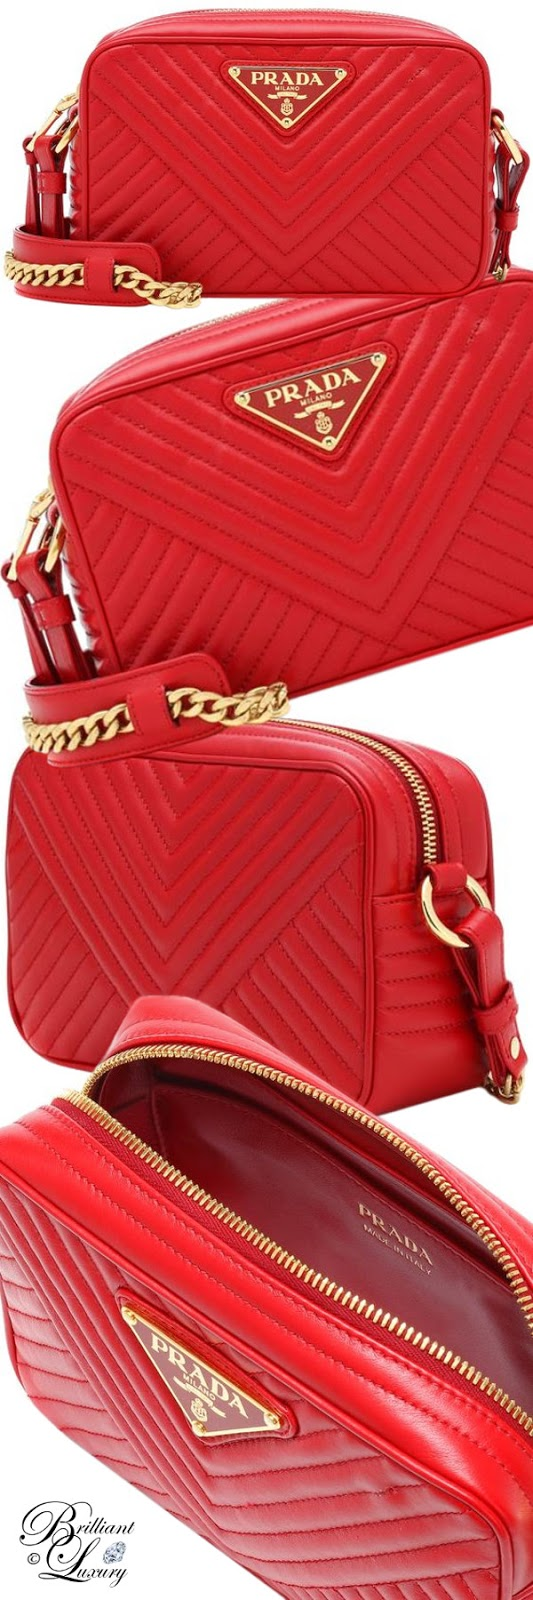 Brilliant Luxury ♦ PANTONE Fashion Color SS 2019 ~ Fiesta ♦ Prada Diagramme leather shoulder bag #red